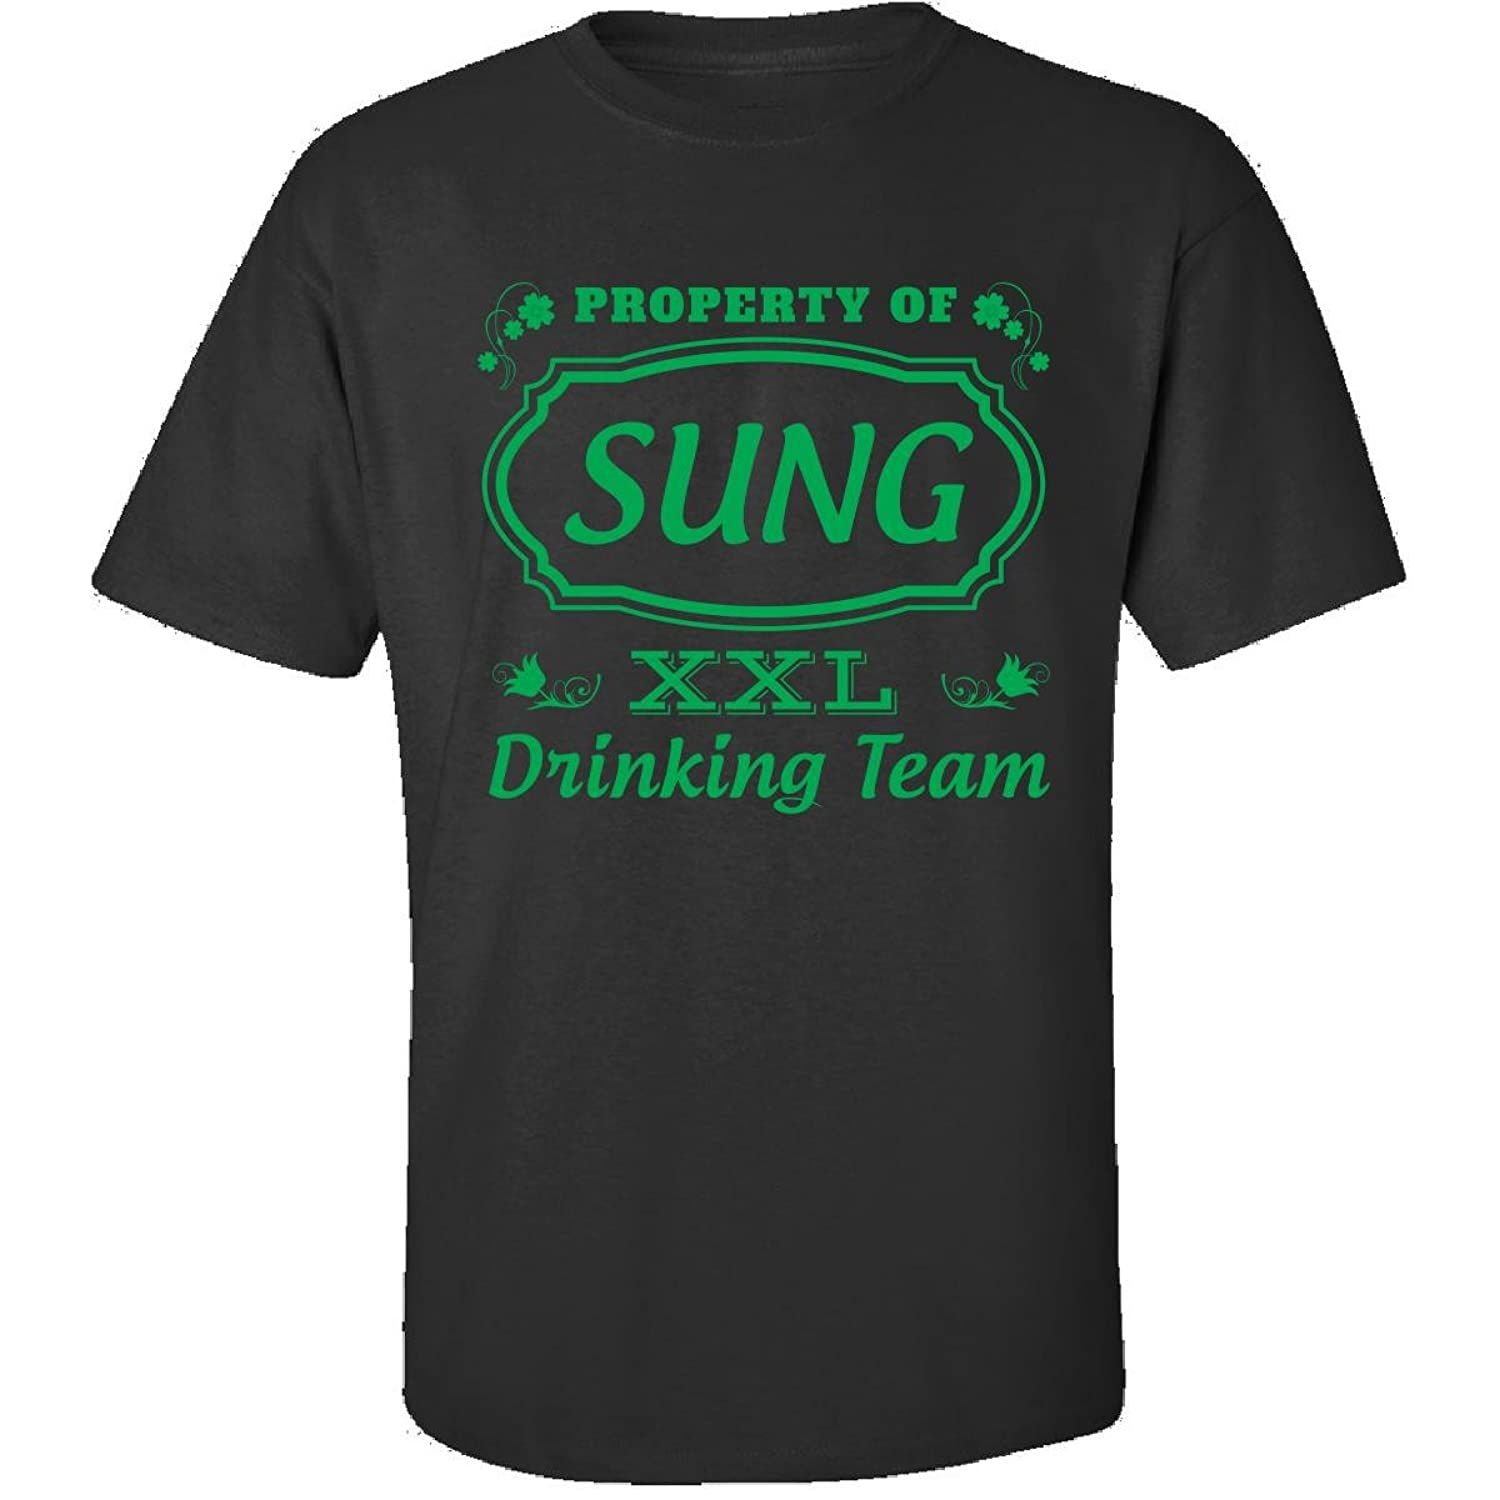 Property Of Sung St Patrick Day Beer Drinking Team - Adult Shirt